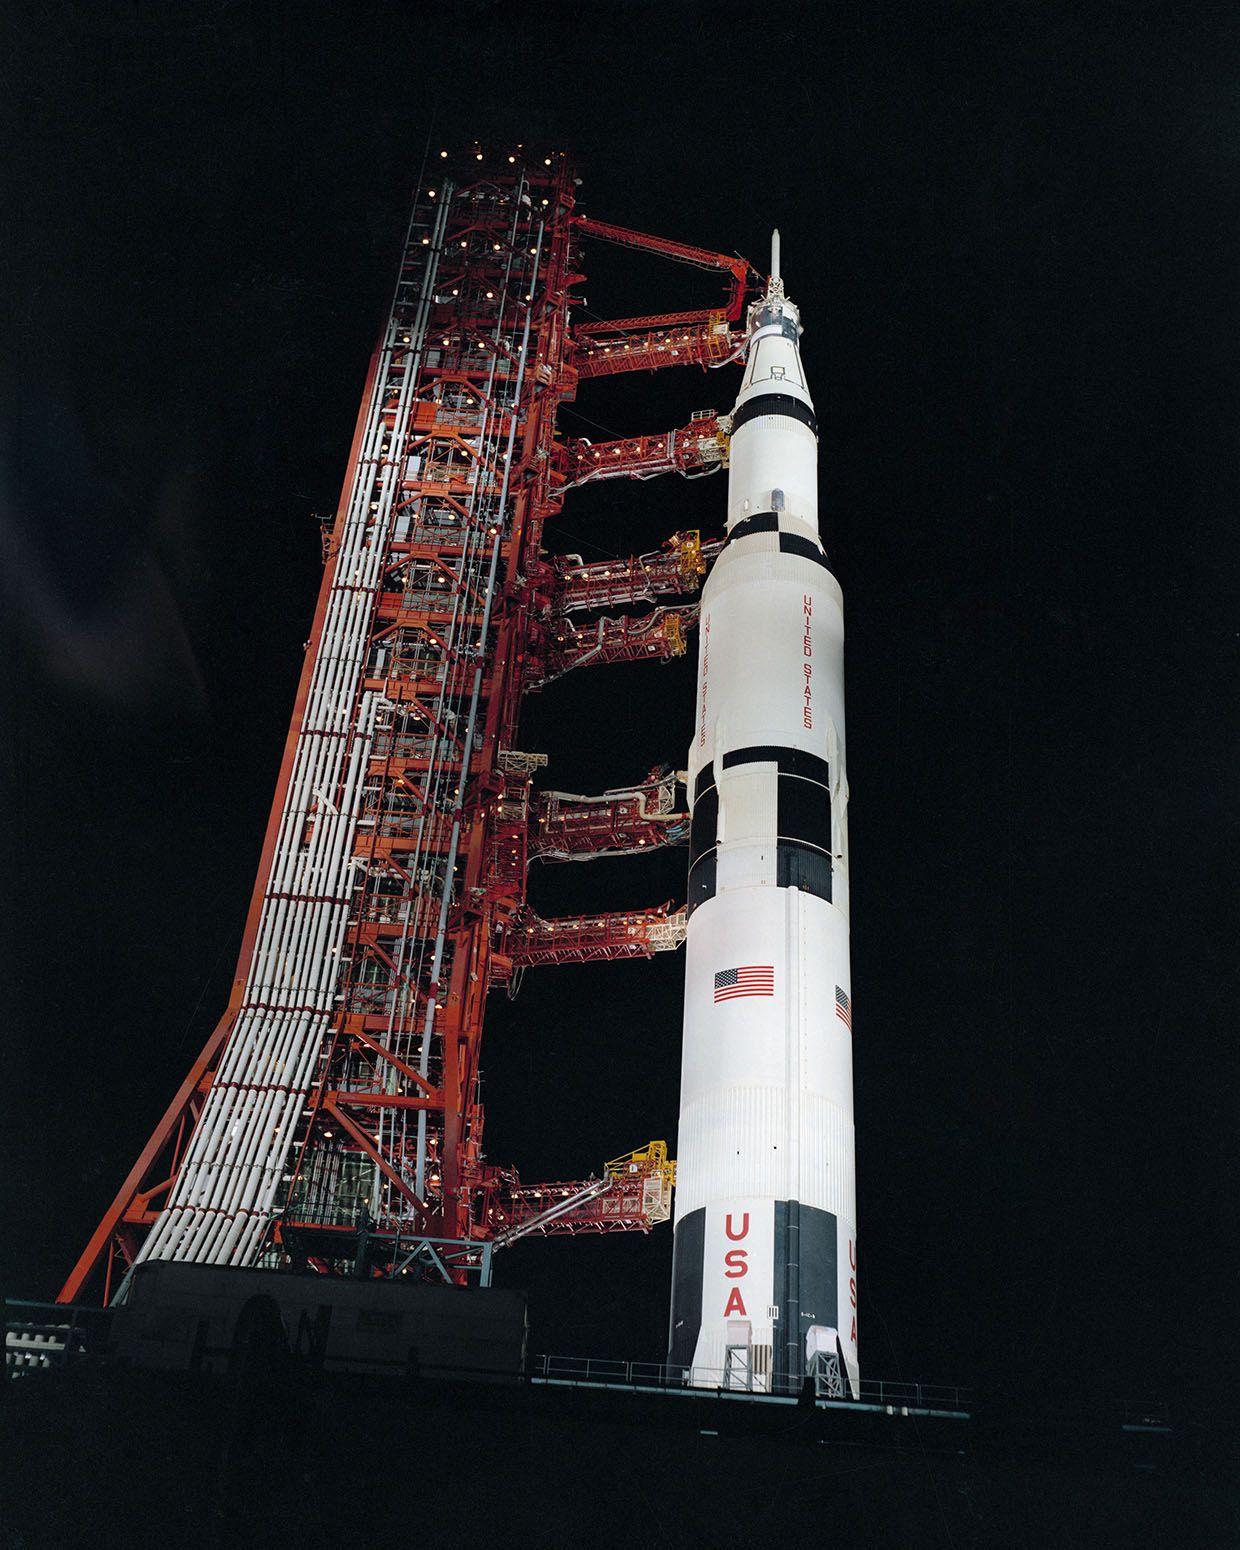 Apollo 13 We Have A Solution Ieee Spectrum How To Build Smart Automotive Circuit Breaker Permanent The Saturn V